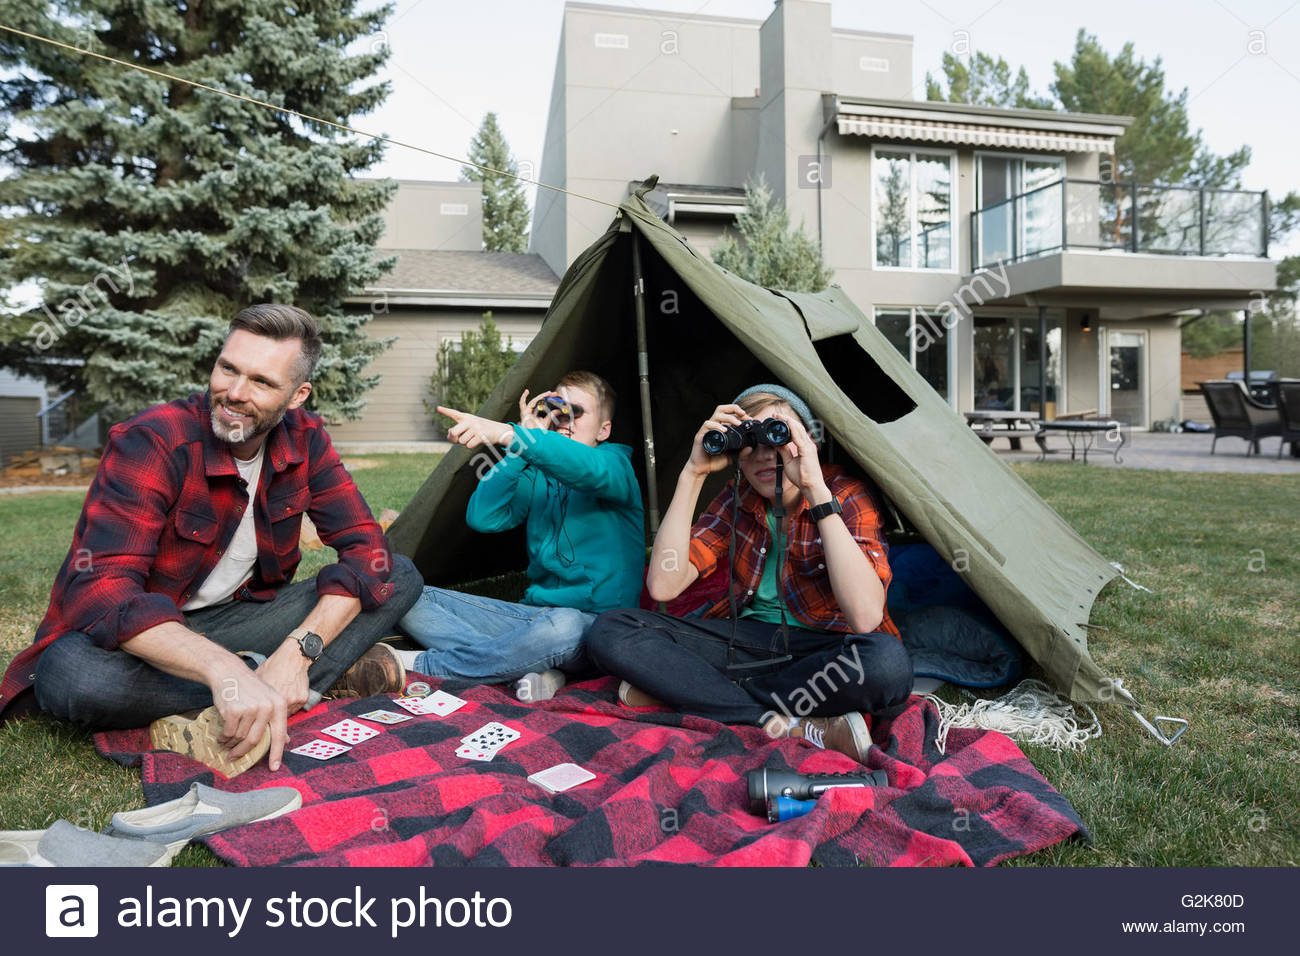 Father and sons with binoculars in backyard tent - Stock Image